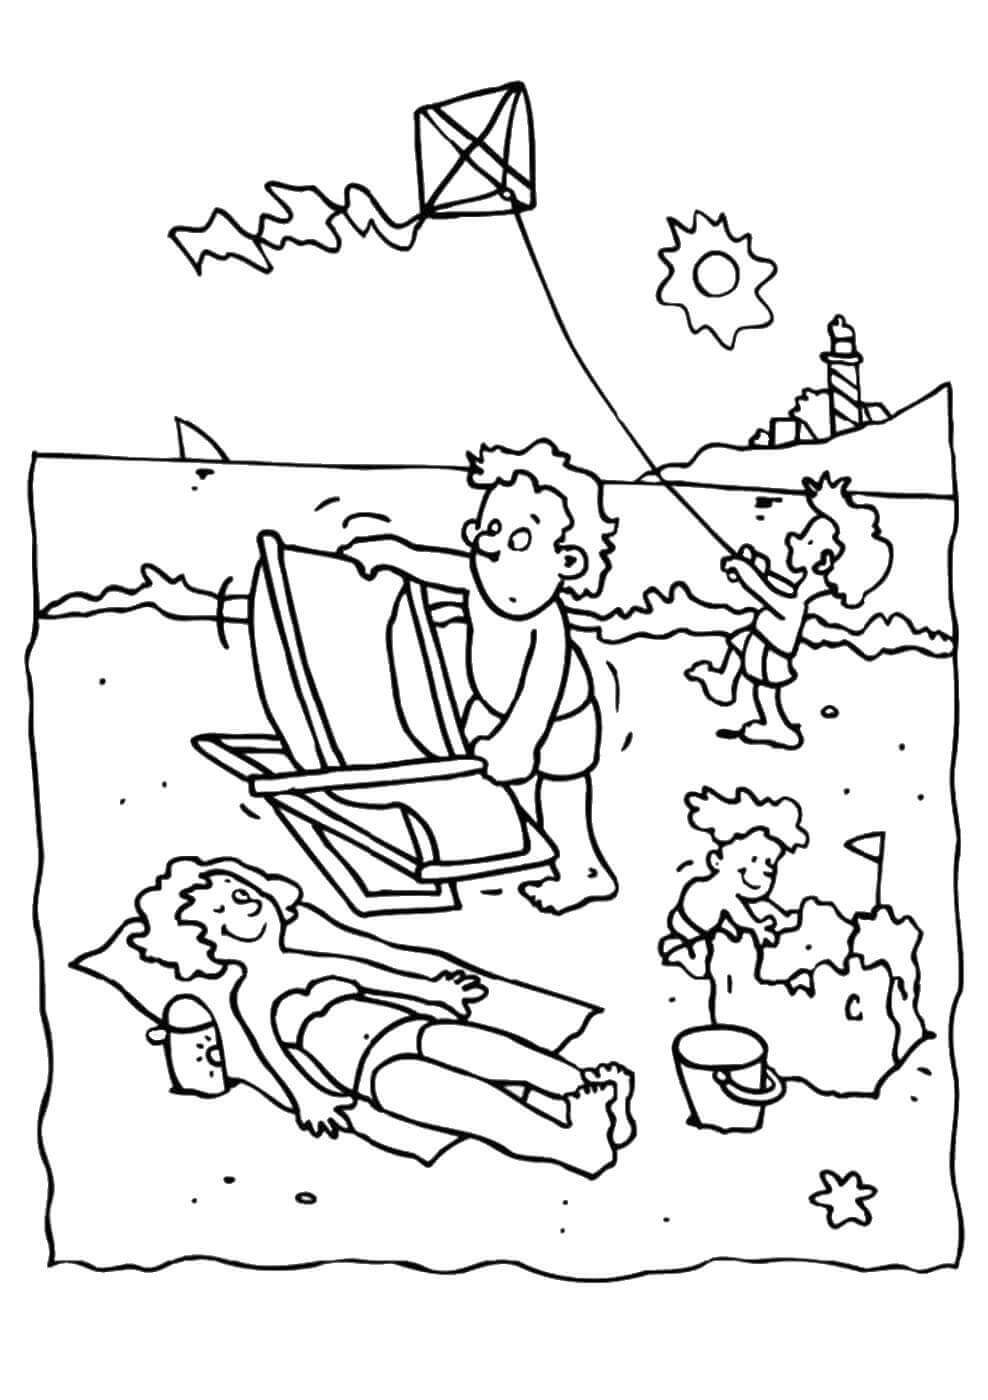 beach picture for coloring 25 free printable beach coloring pages picture coloring for beach